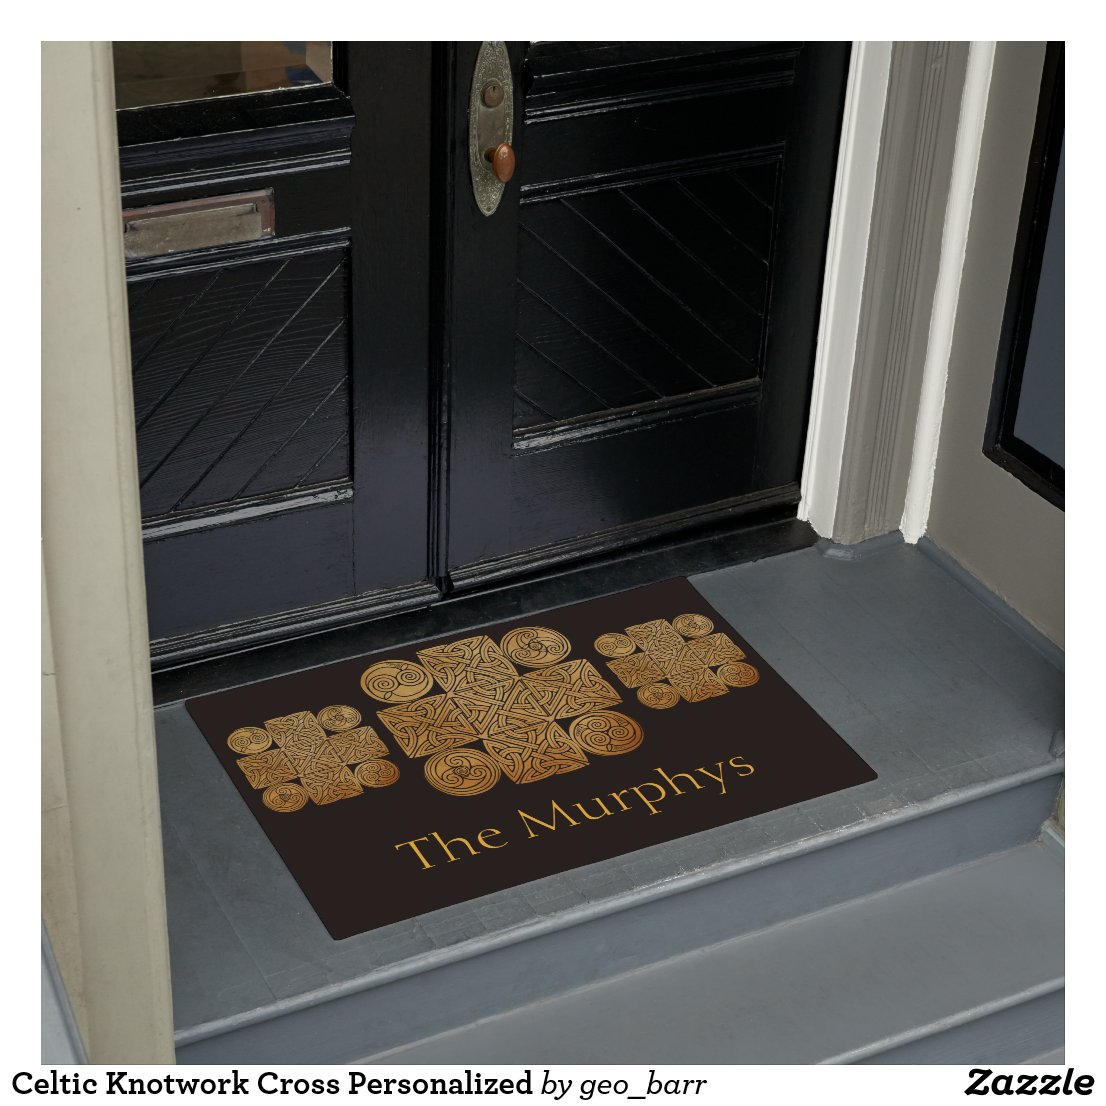 Celtic Knotwork Cross Personalized Doormat